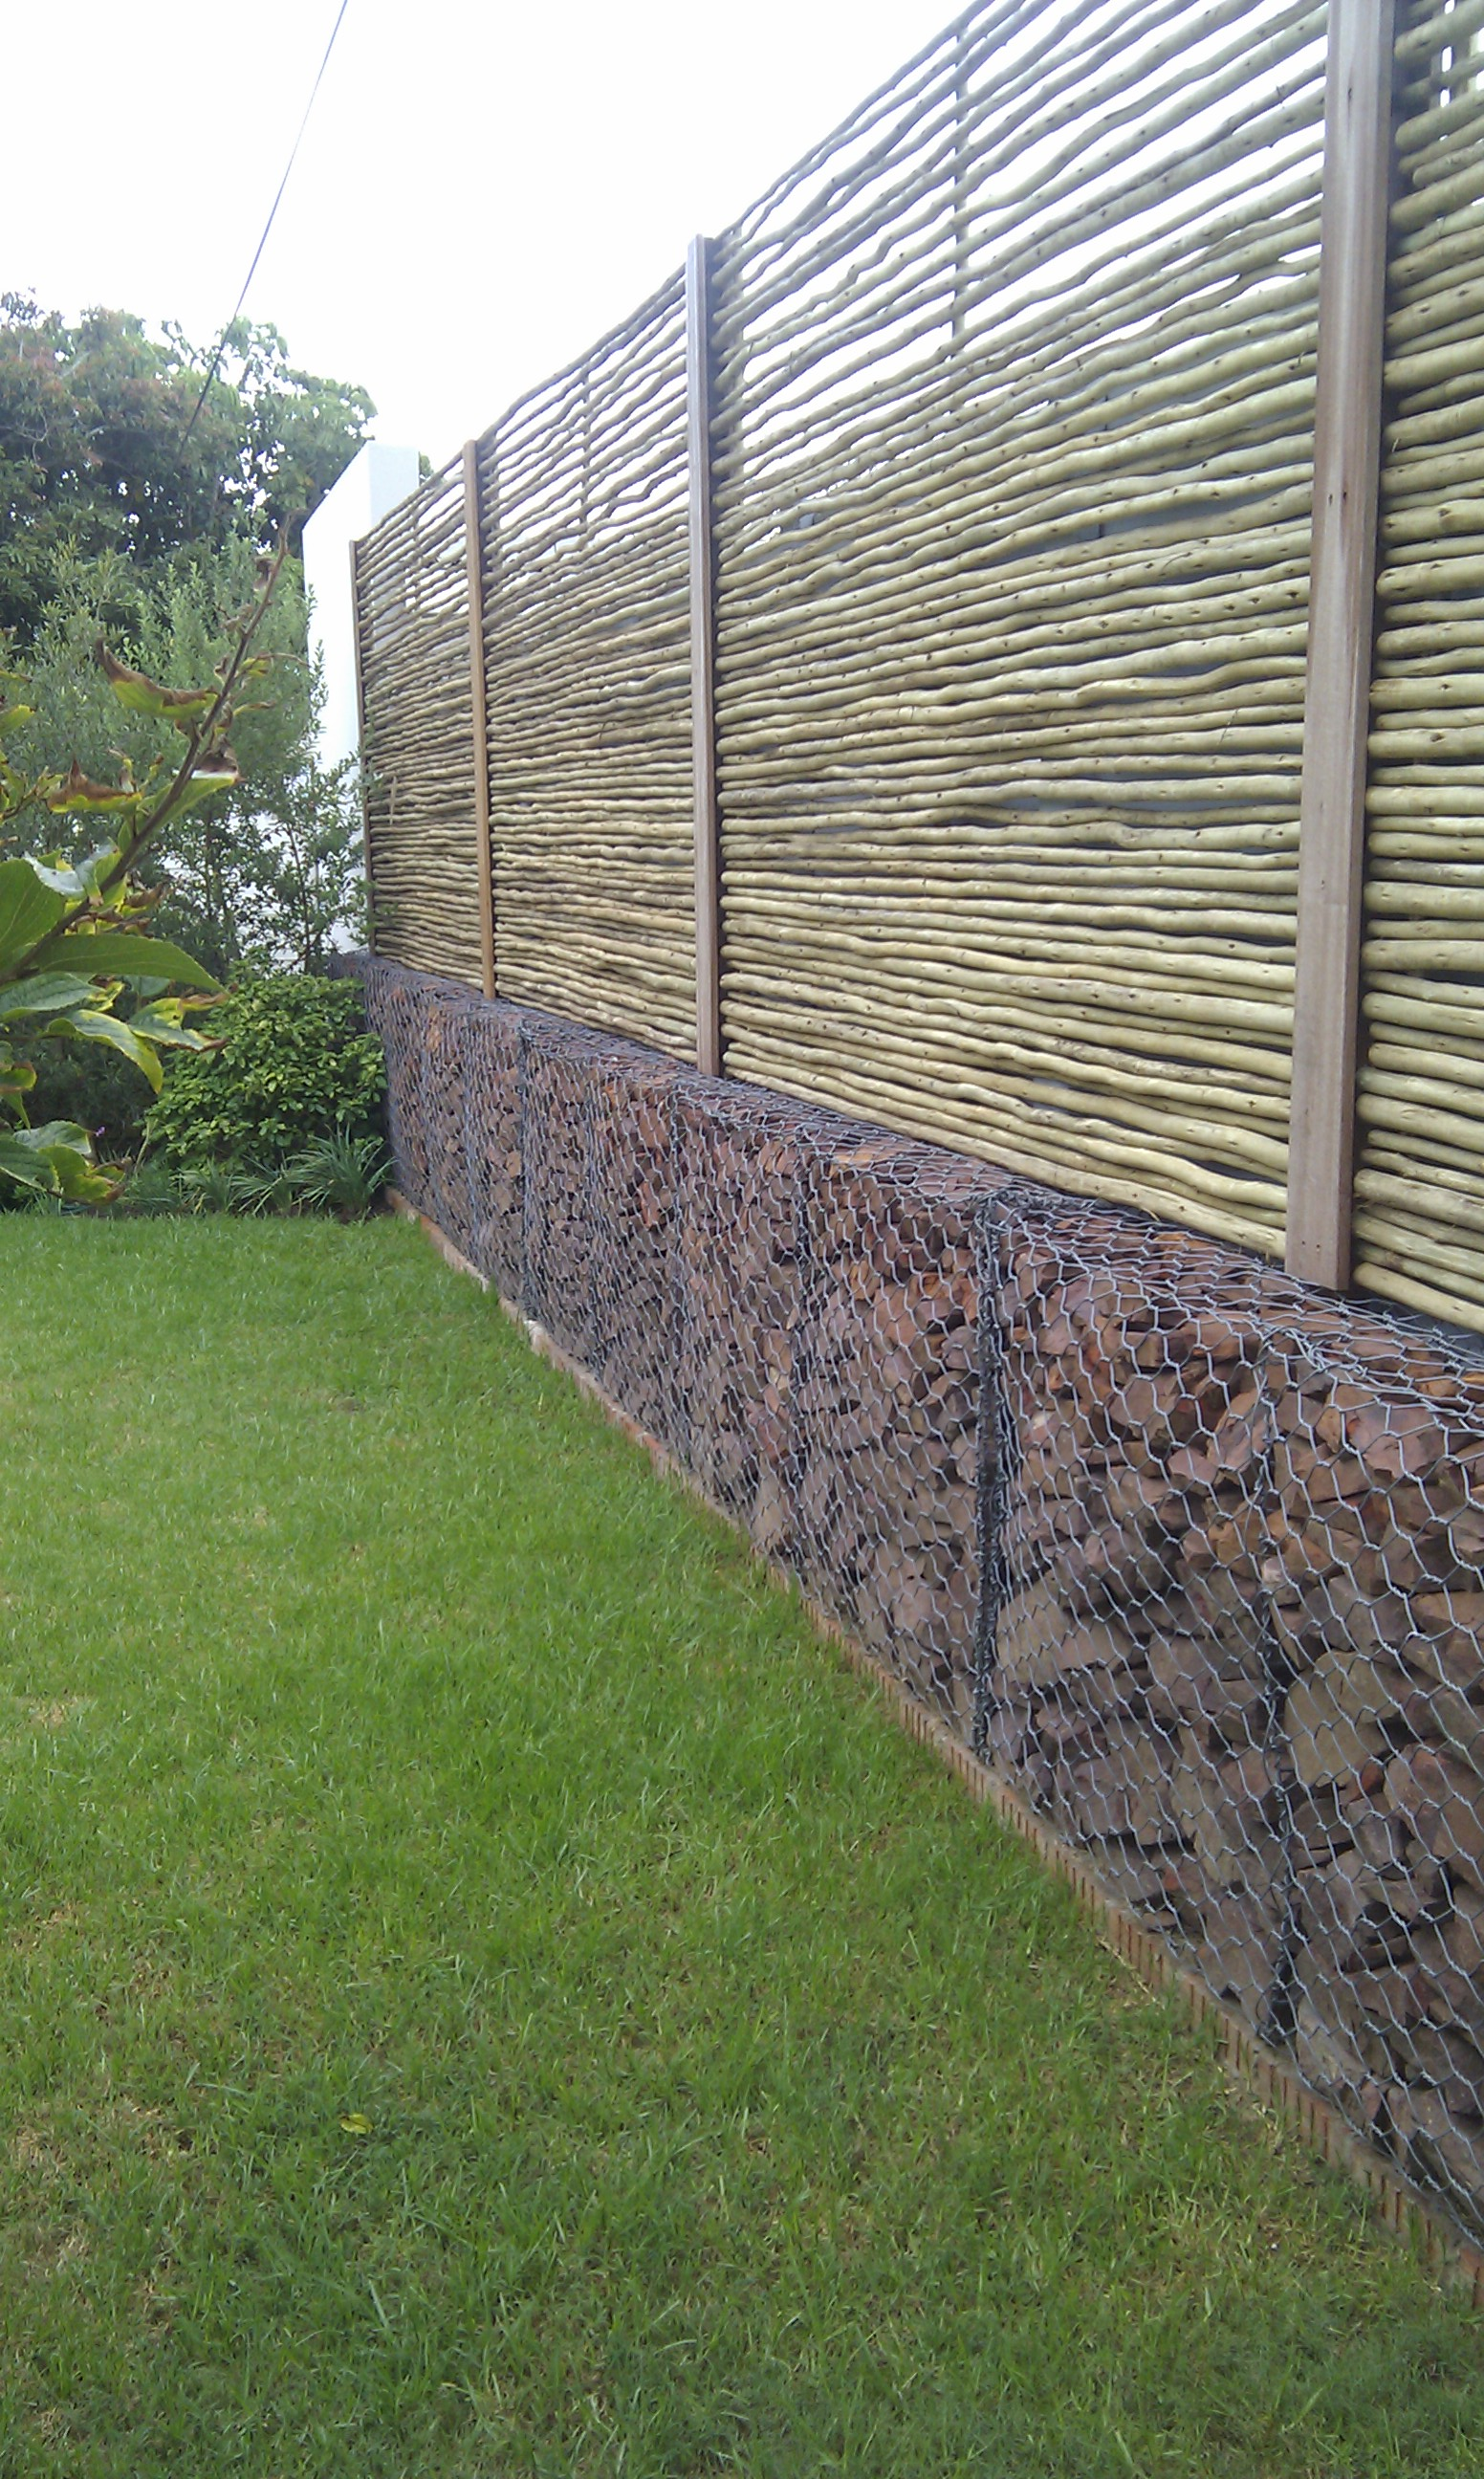 Amazon Moderne Gartengestaltung Gabions Skyhooks And Other Projects